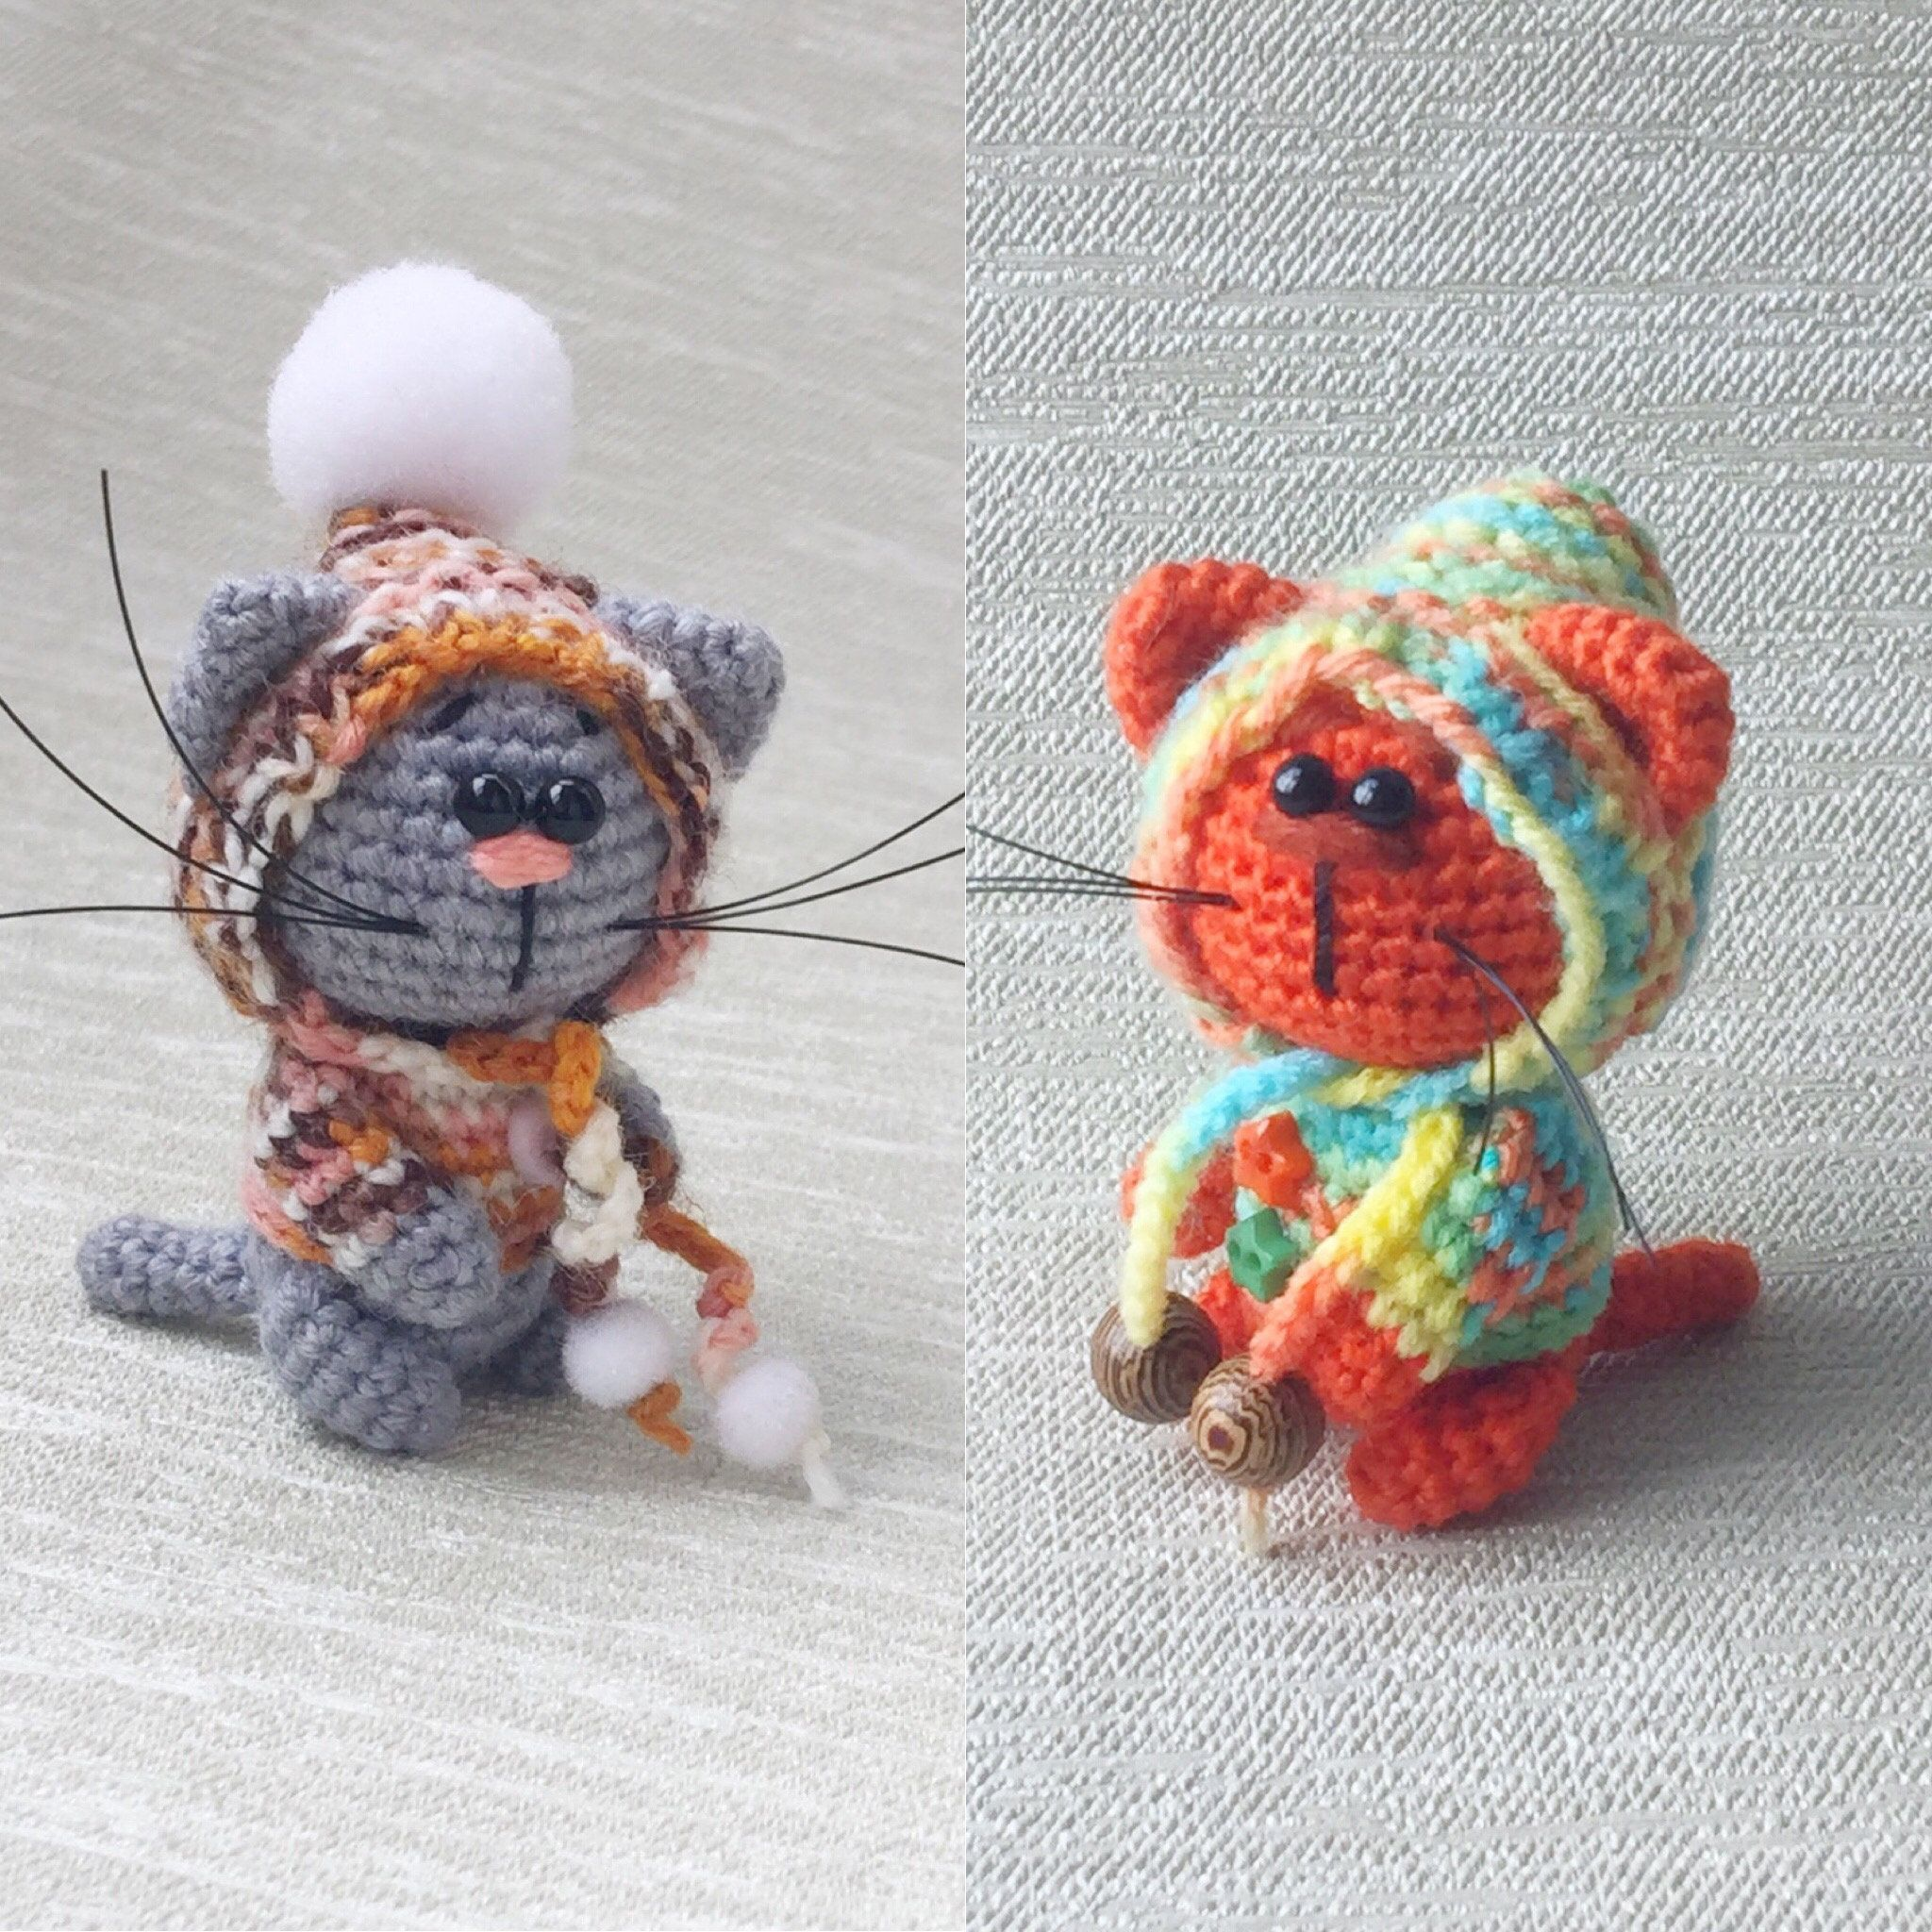 Crochet Little Kitten Pattern Pdf Cat English Language Tutorial Amigurumi Pattern In 2020 Rainbow Hats Crochet Patterns Grey Kitten